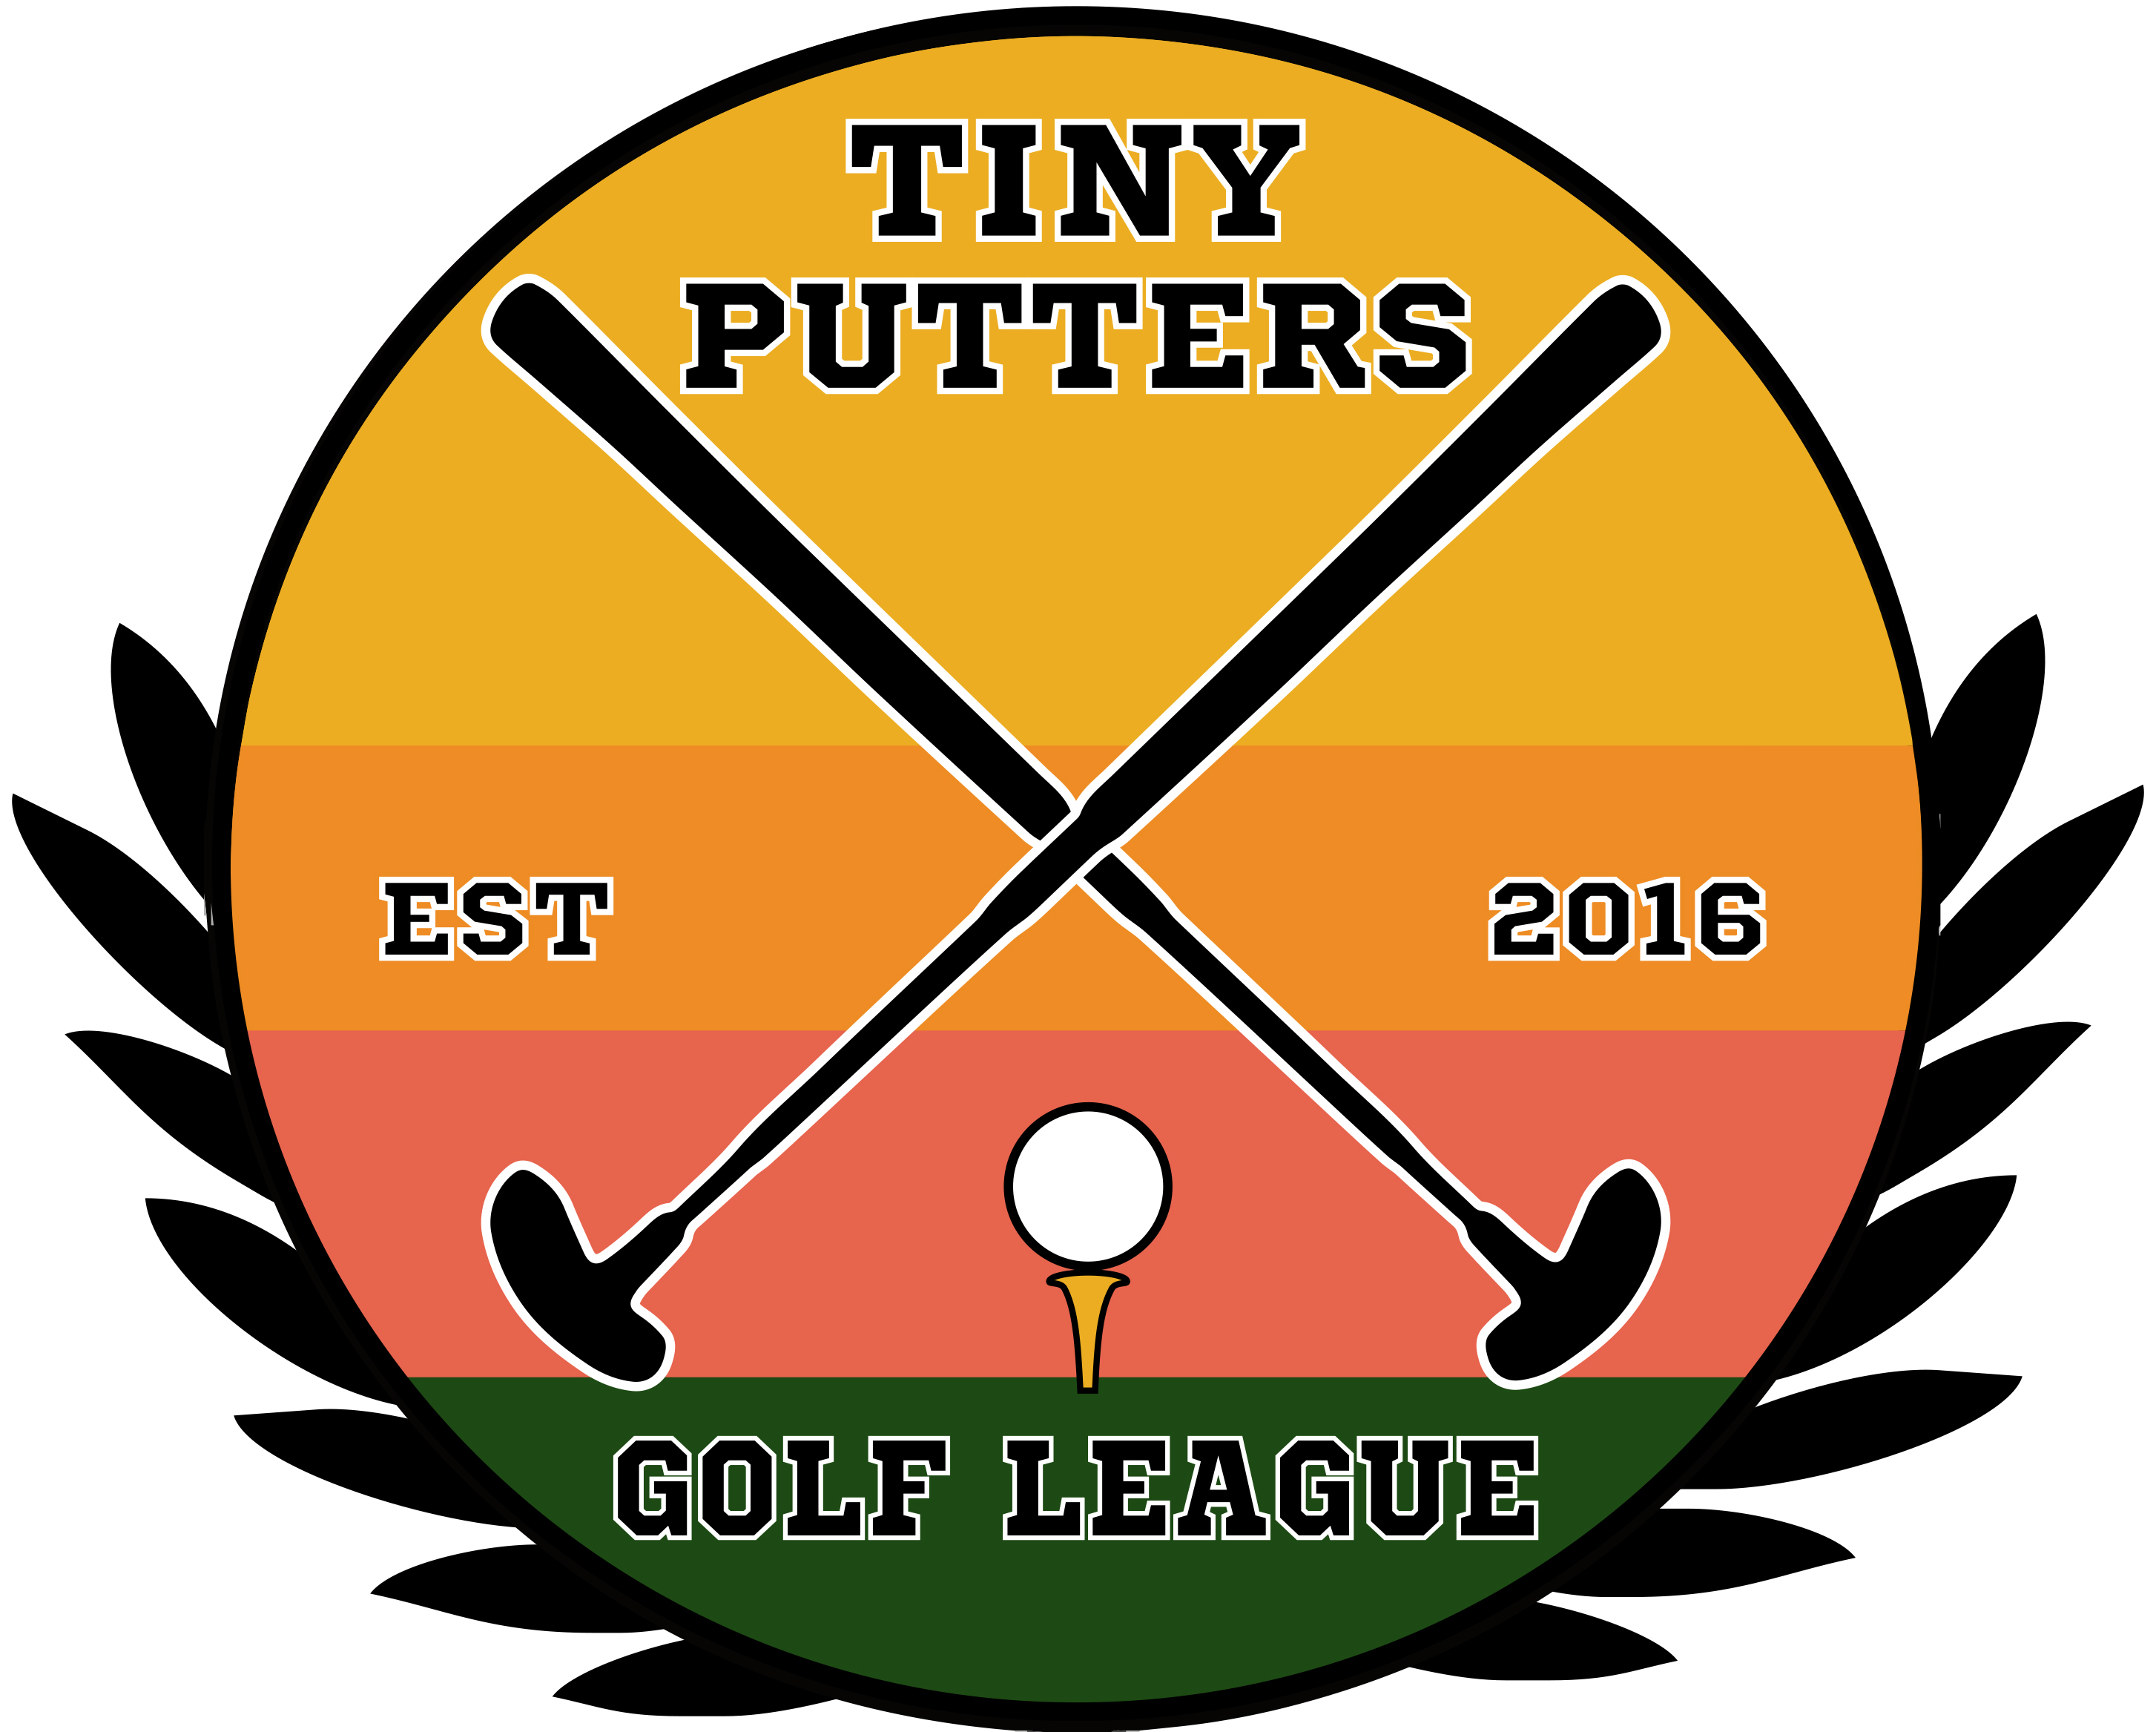 Tiny Putters Final